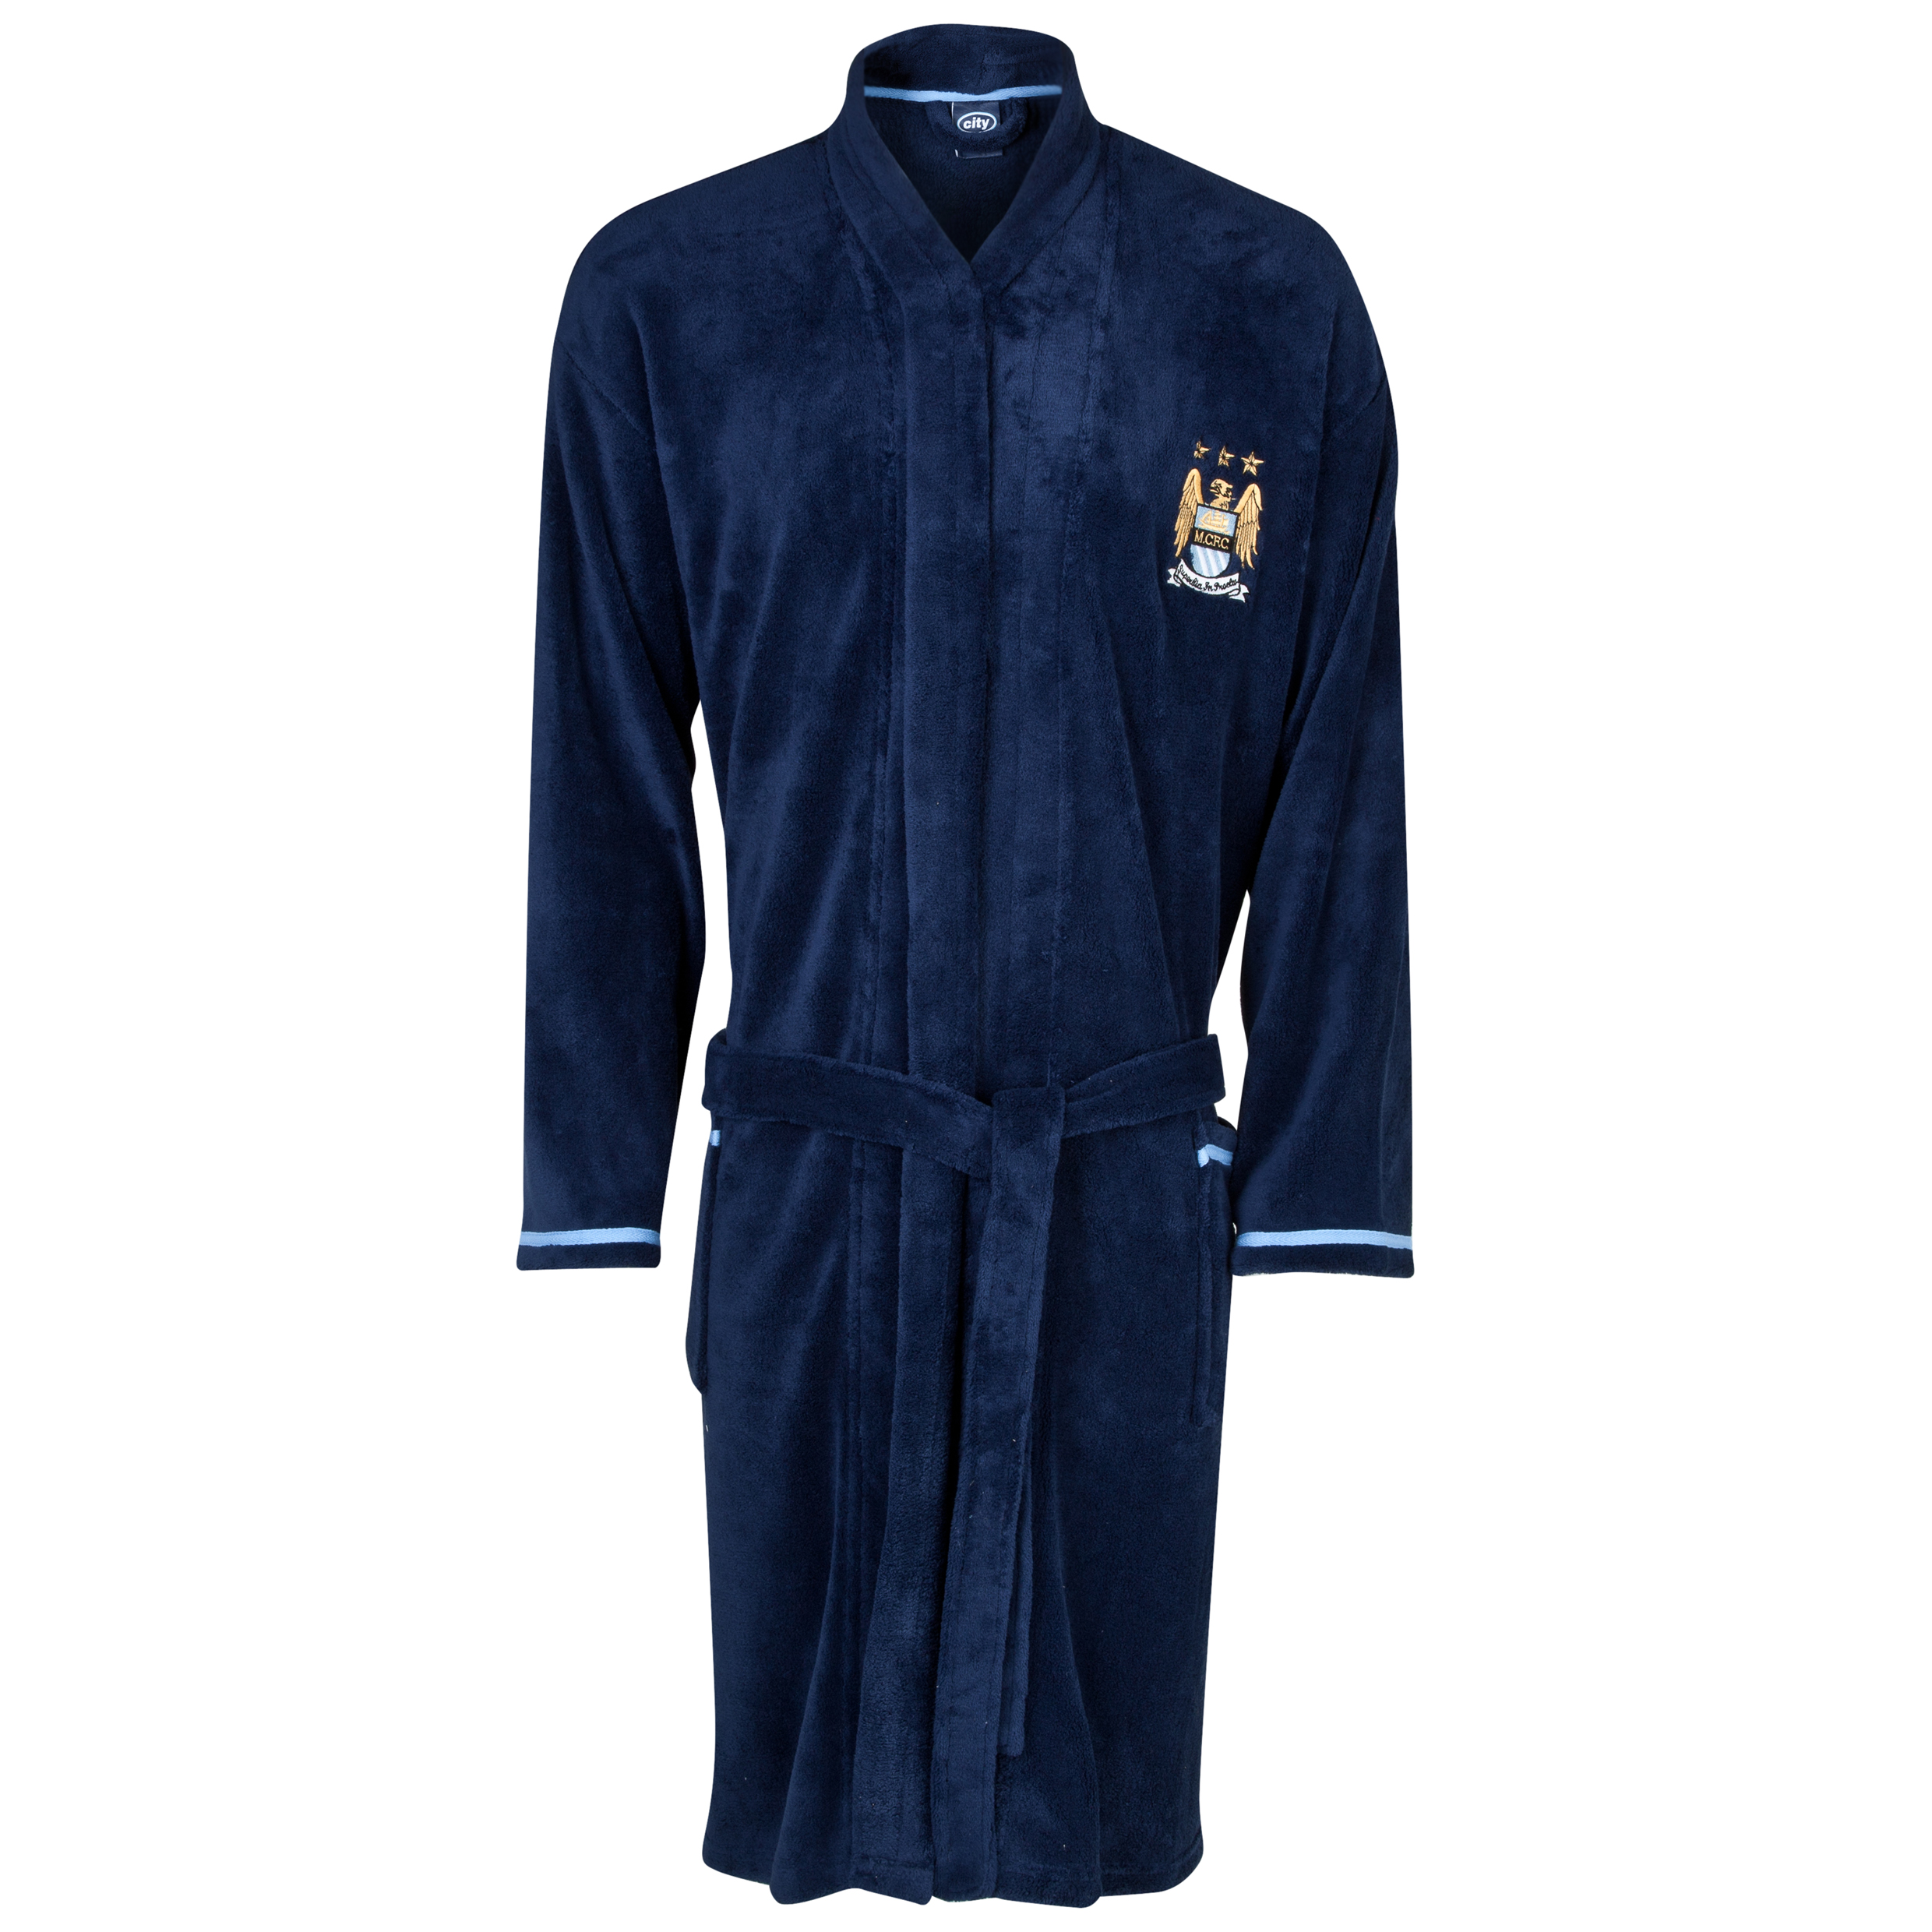 Manchester City Robe Mens Navy